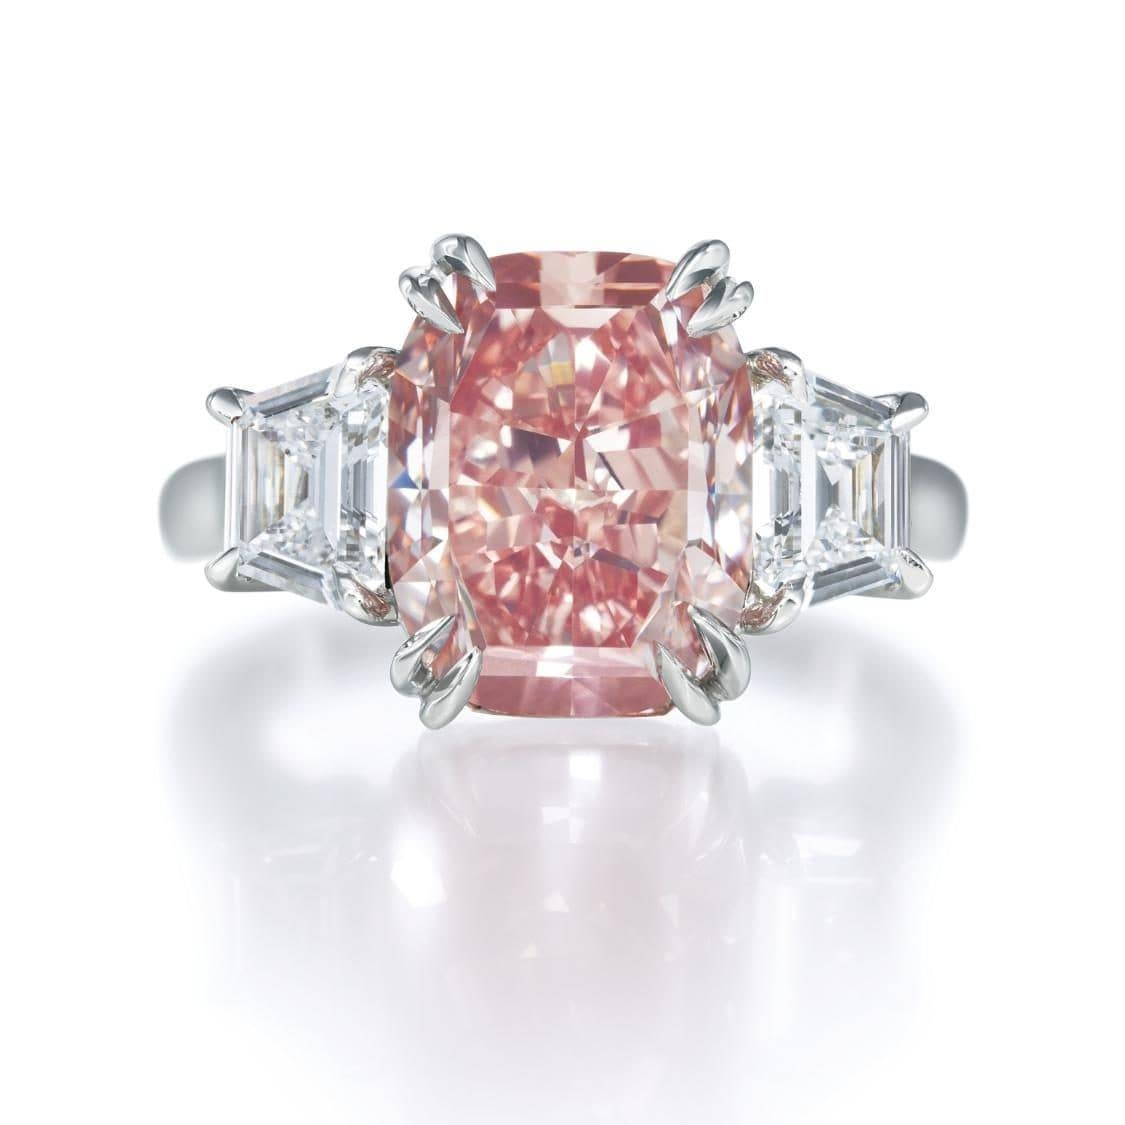 Argyle Pink Diamond Engagement Rings – Pink Diamond Engagement Regarding Feminine Engagement Rings (Gallery 11 of 15)